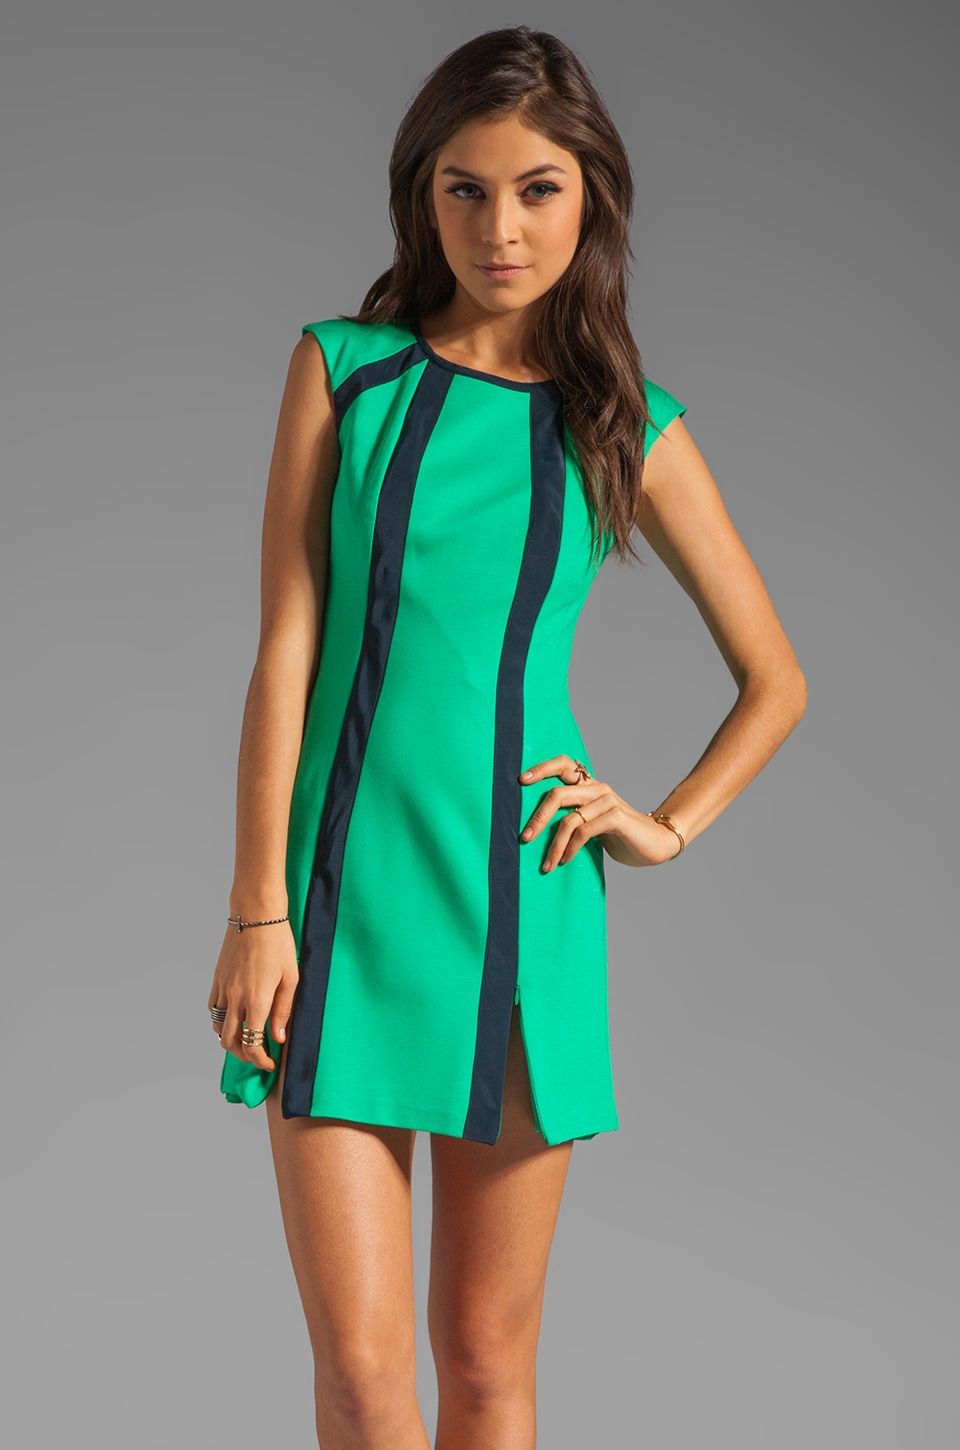 Nanette Lepore Underground Ponte Dress in Gumball Green/Navy